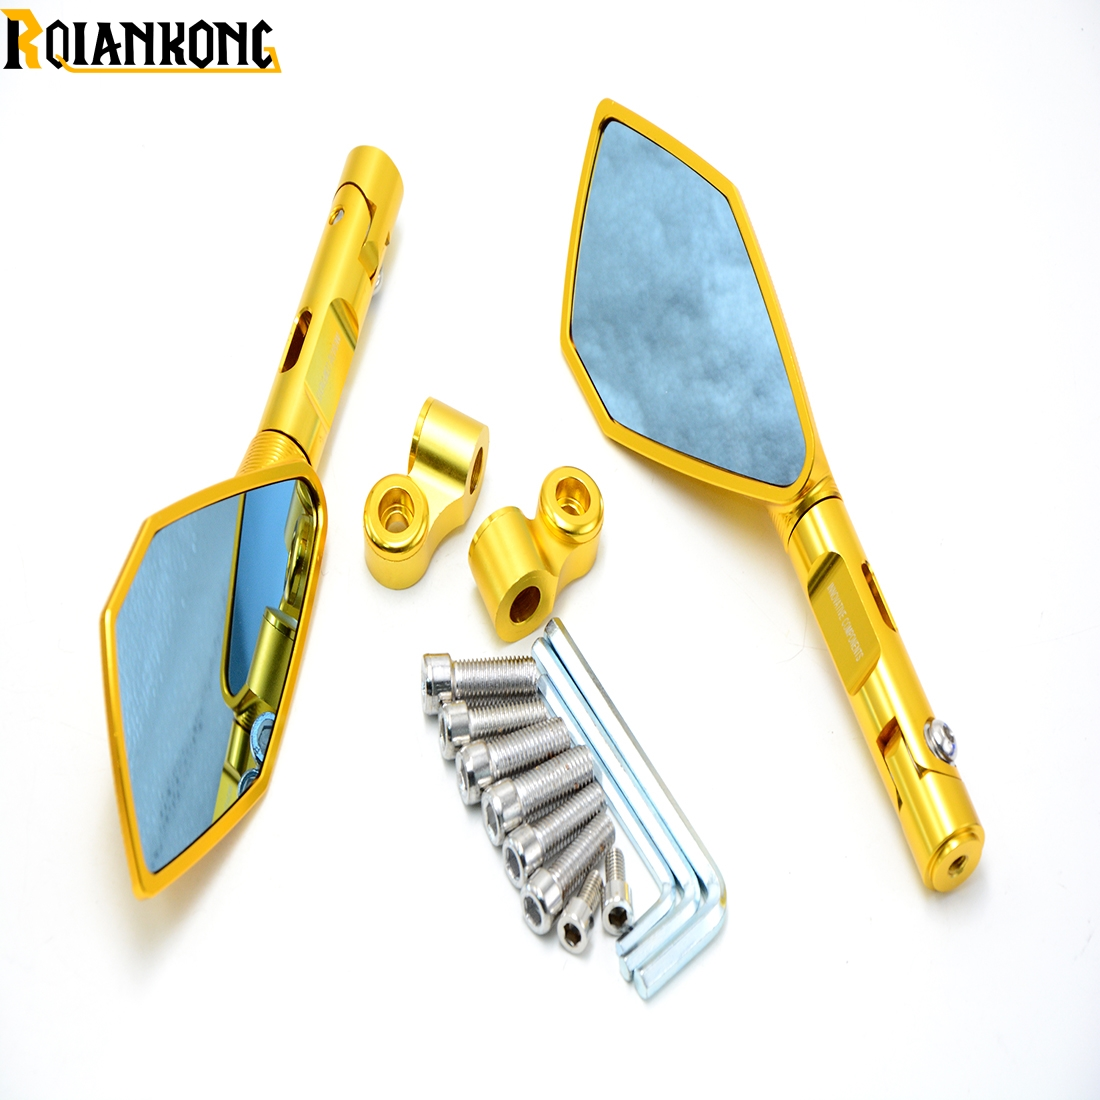 Italy Brand logo mark Motorcycle Rearview side Mirrors CNC Aluminum for Yamaha XJ6/DIVERSION XJR 1300/Racer XSR 700 900/ABS italy brand logo mark motorcycle rearview side mirrors cnc aluminum for honda cbr954rr nc700 nc750 s x pcx125 st 1300 a